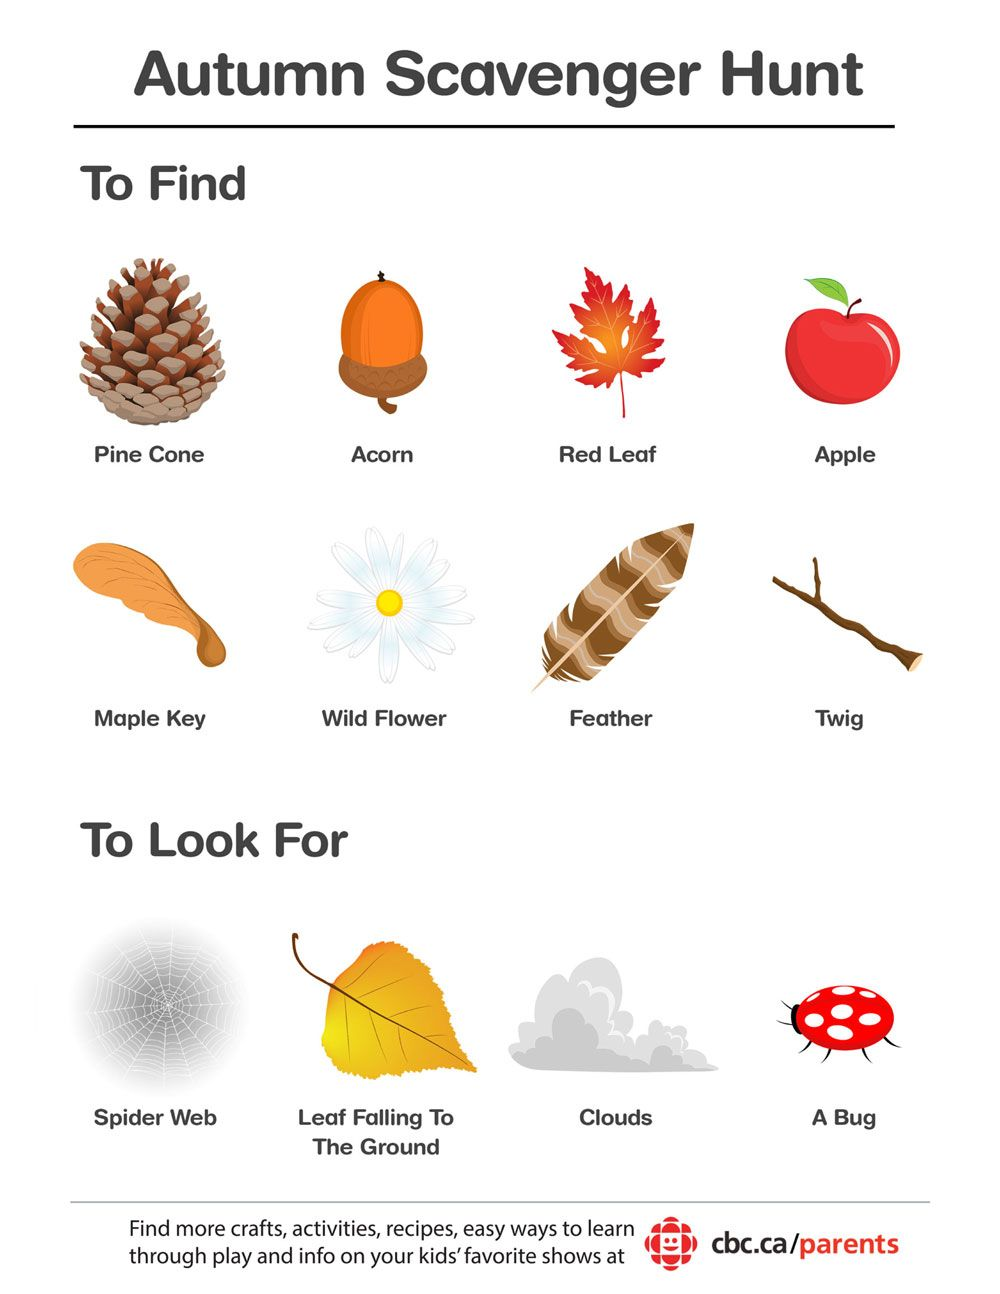 image about Fall Scavenger Hunt Printable named Printable Autumn Scavenger Hunt Expertise is electricity